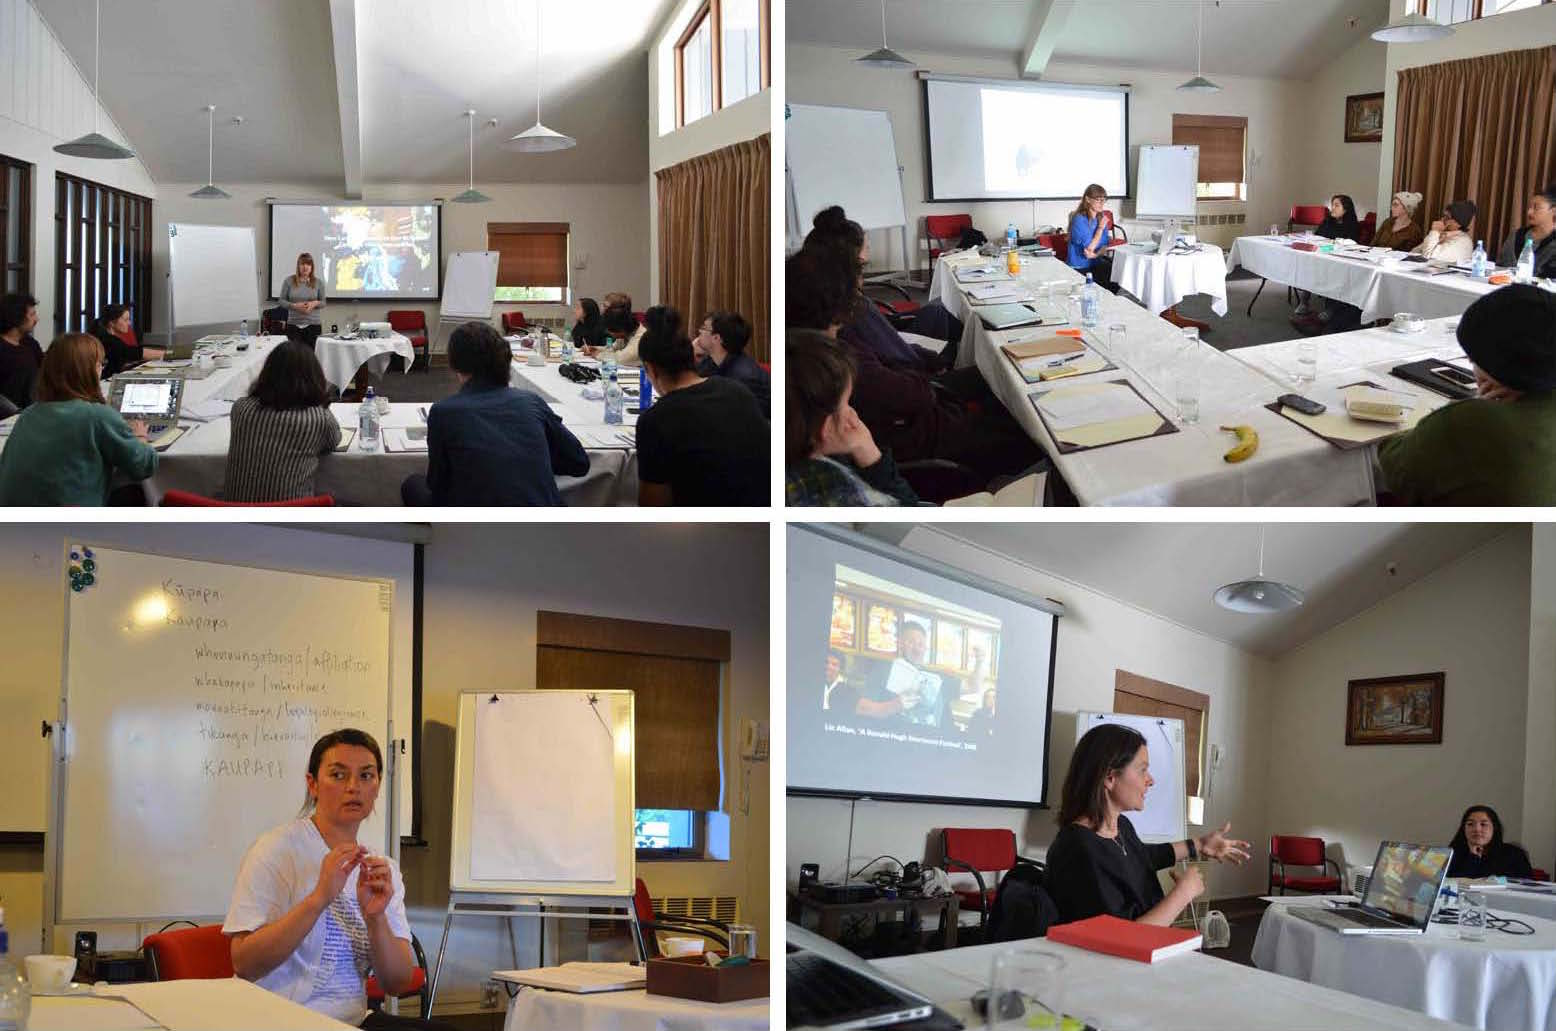 Seminars by presenters at Aoraki Mt Cook Village, 12-15 November, 2015.